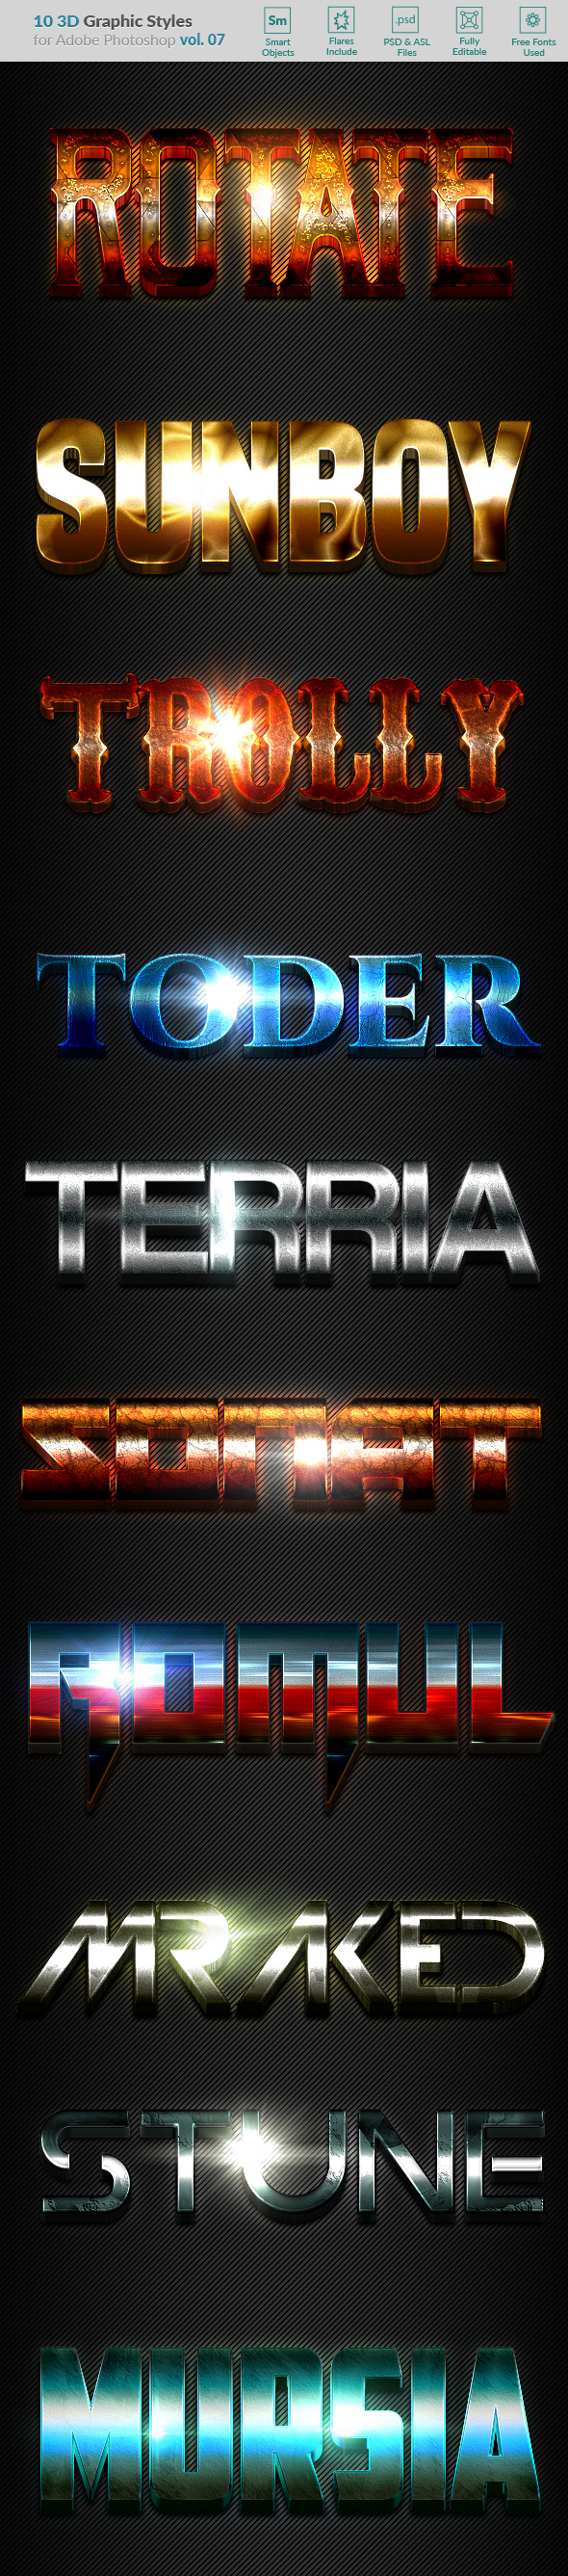 10 3D Styles vol. 07 - Text Effects Styles